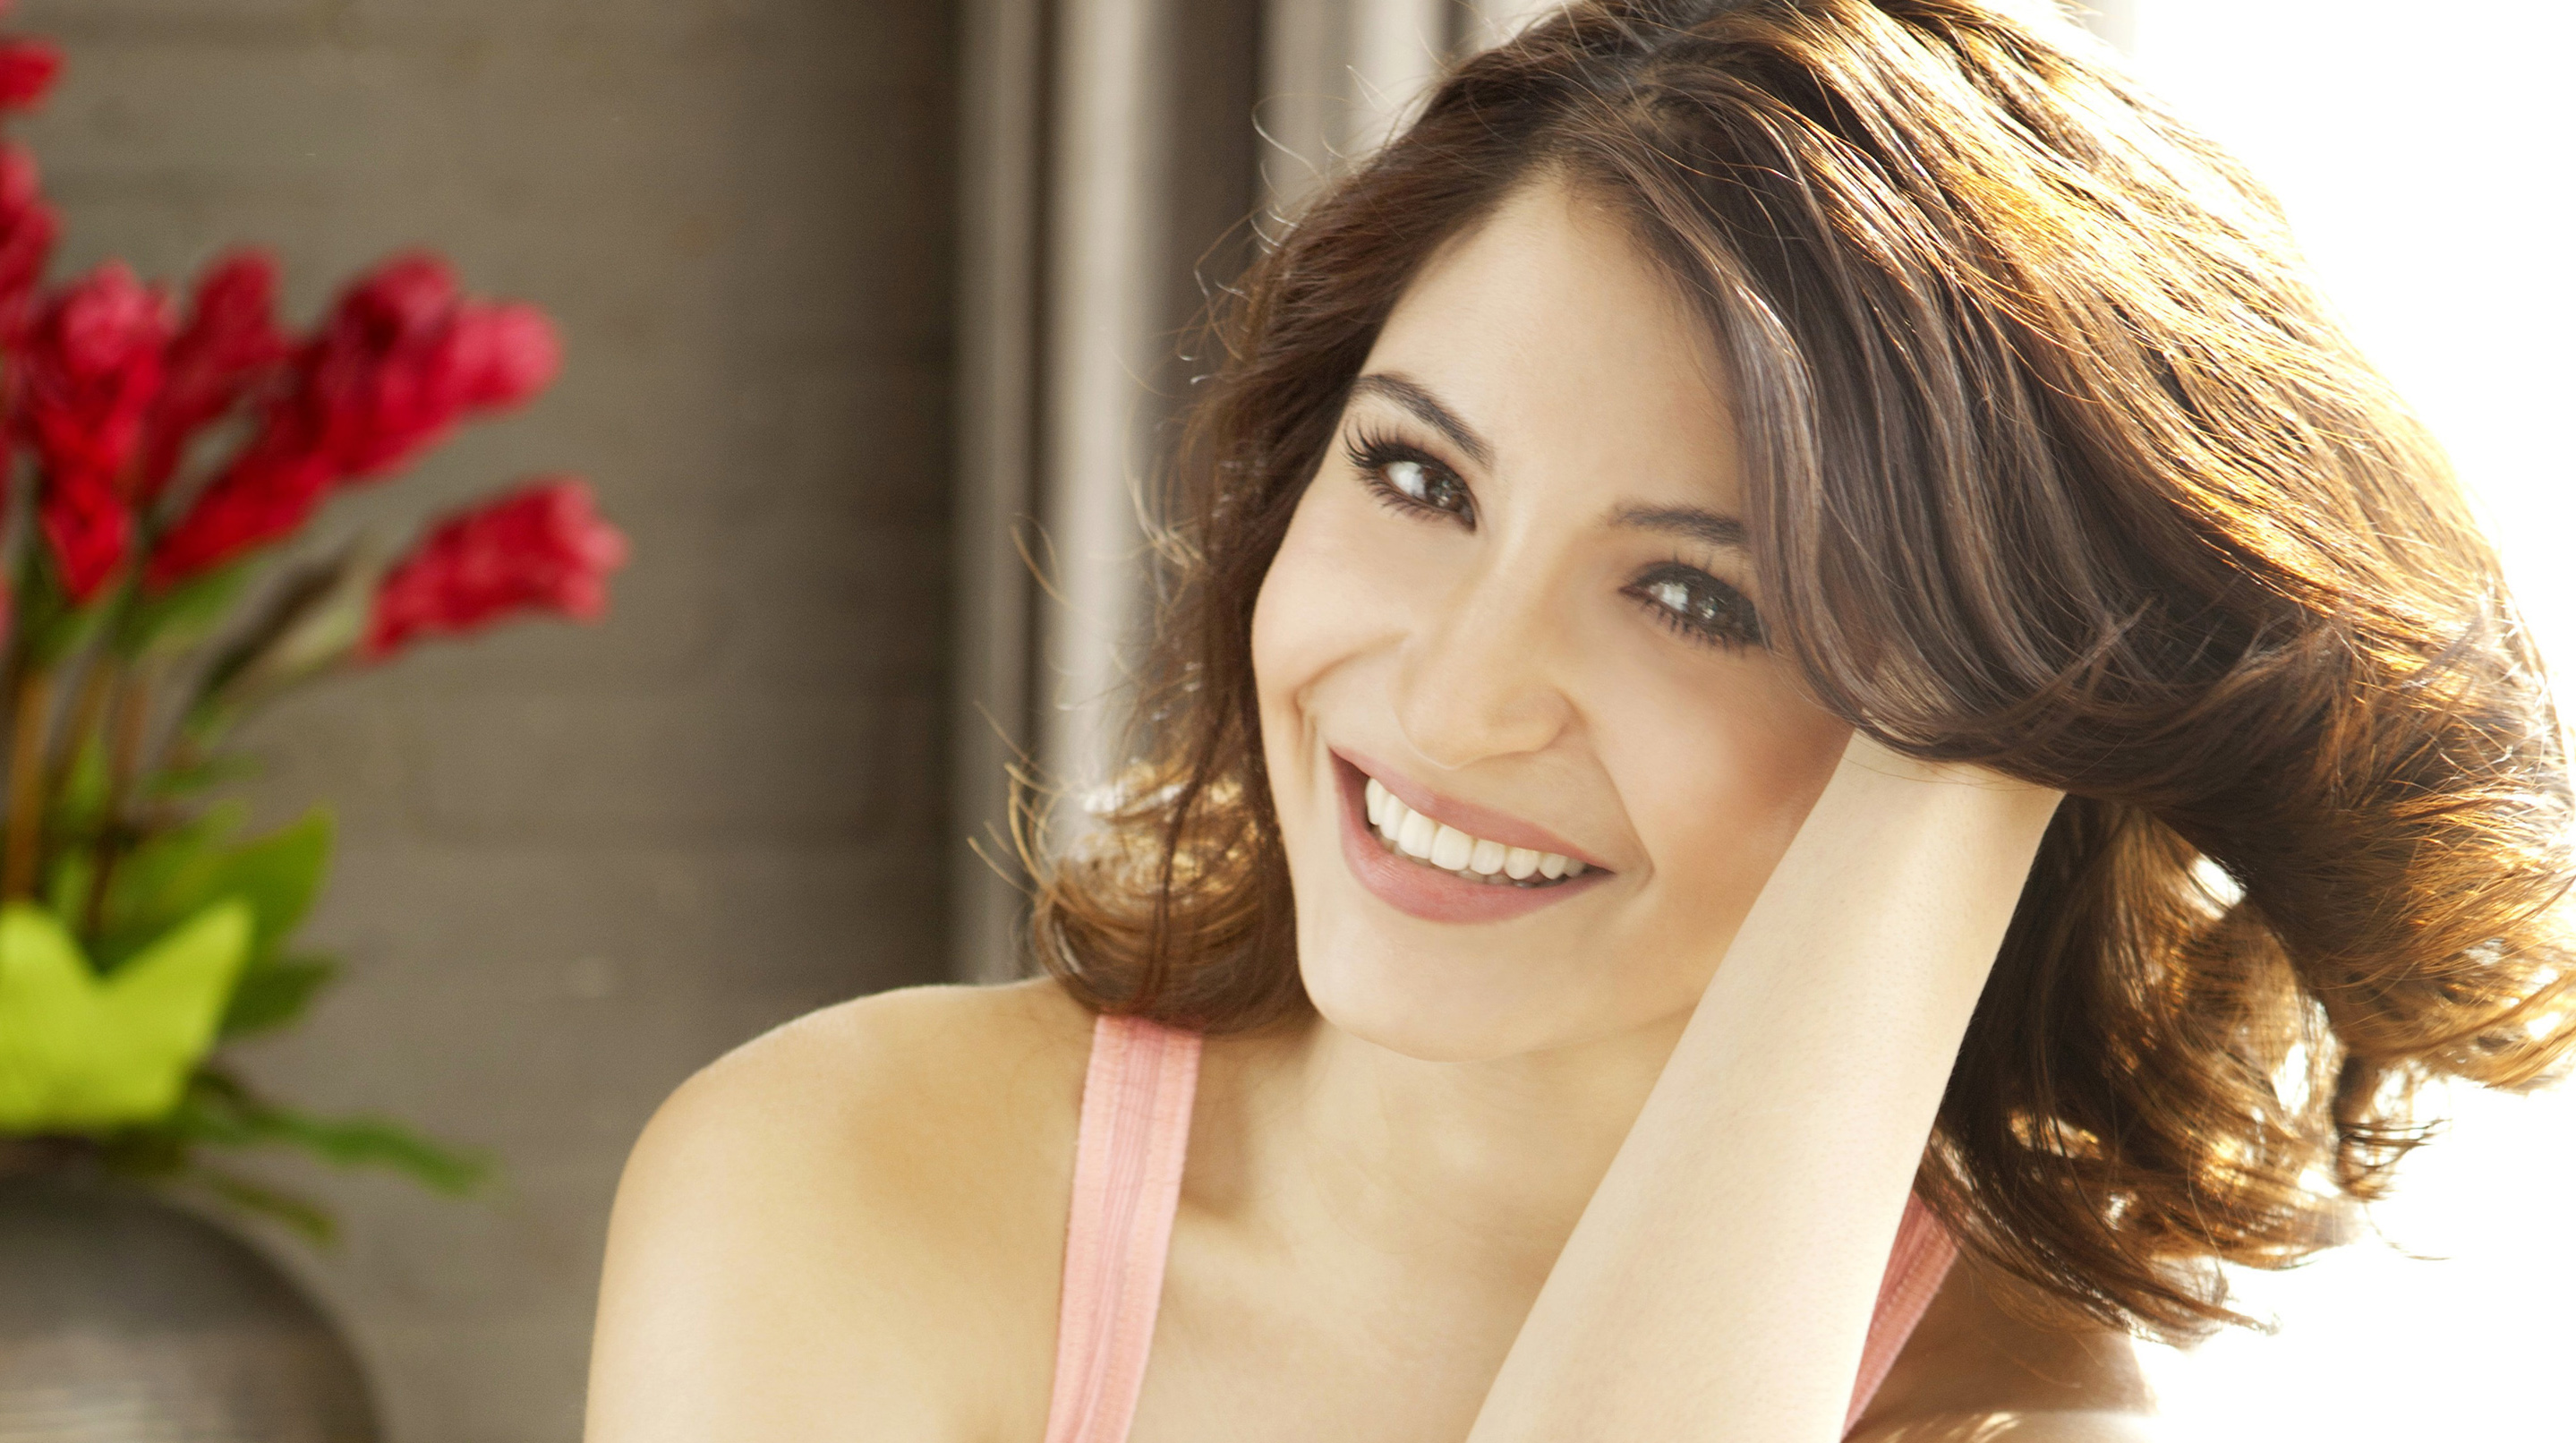 Anushka Sharma becomes new brand ambassador for Colgate active salt